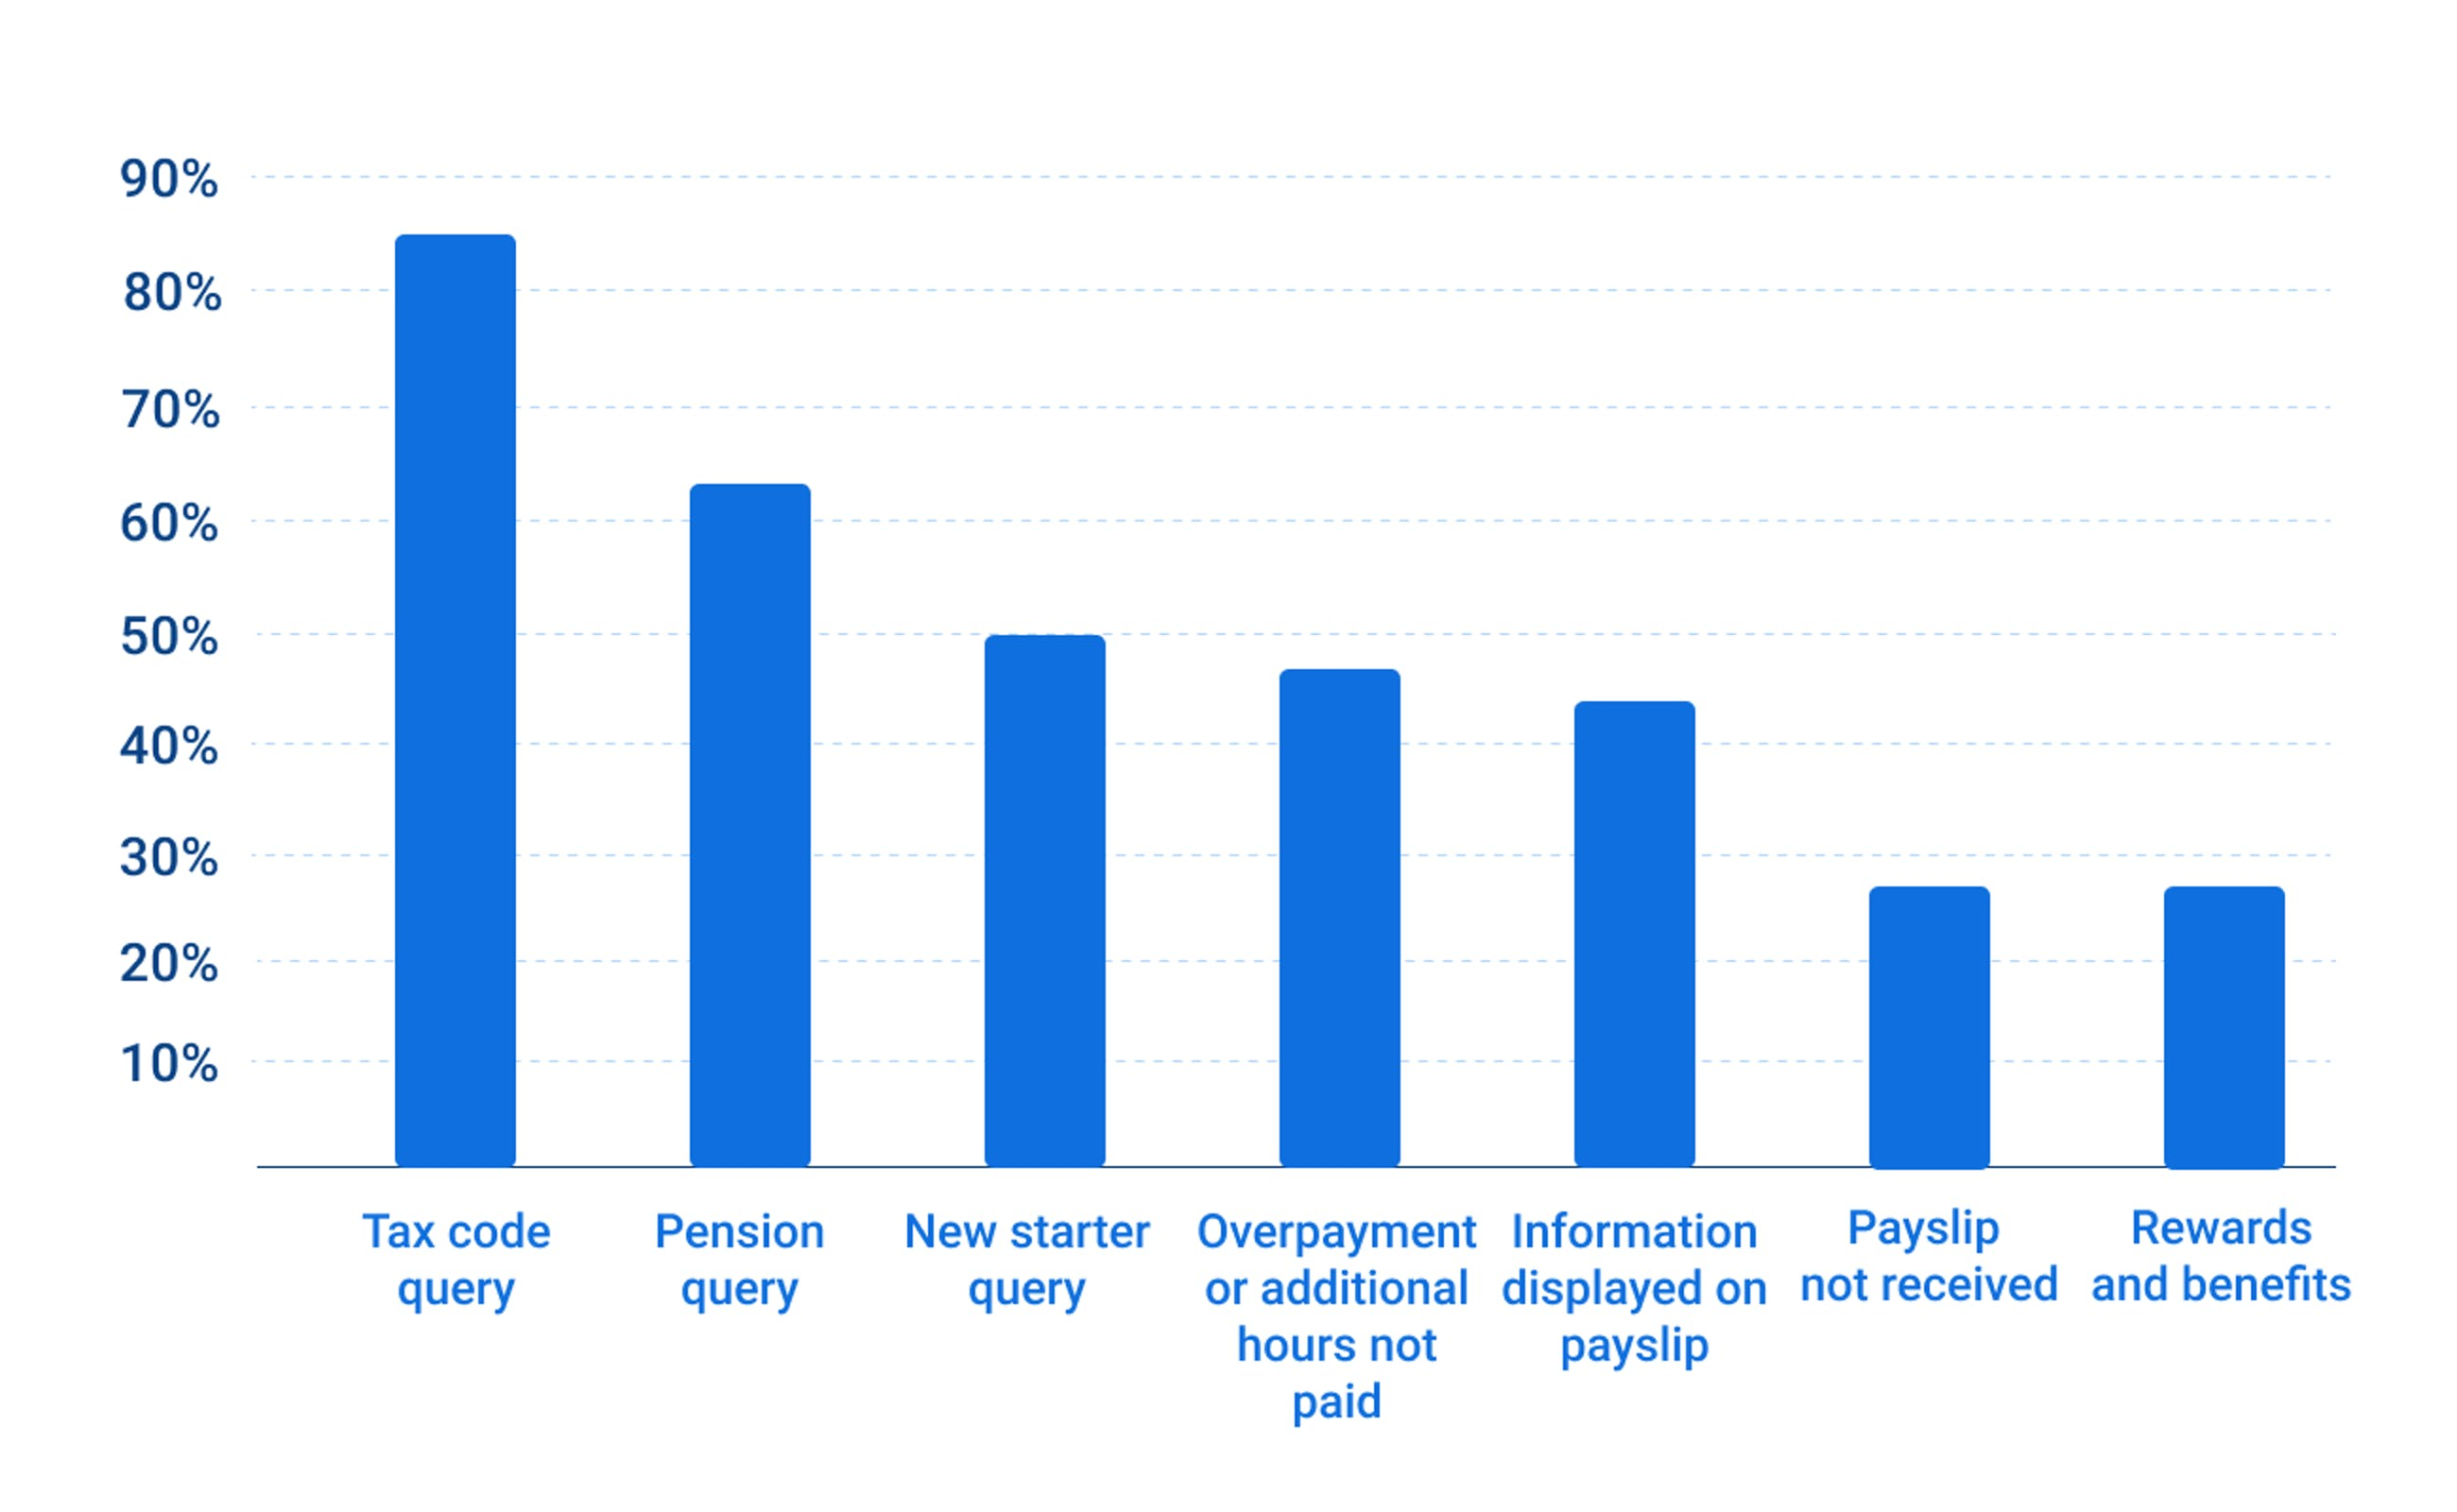 Queries received by payroll departments.